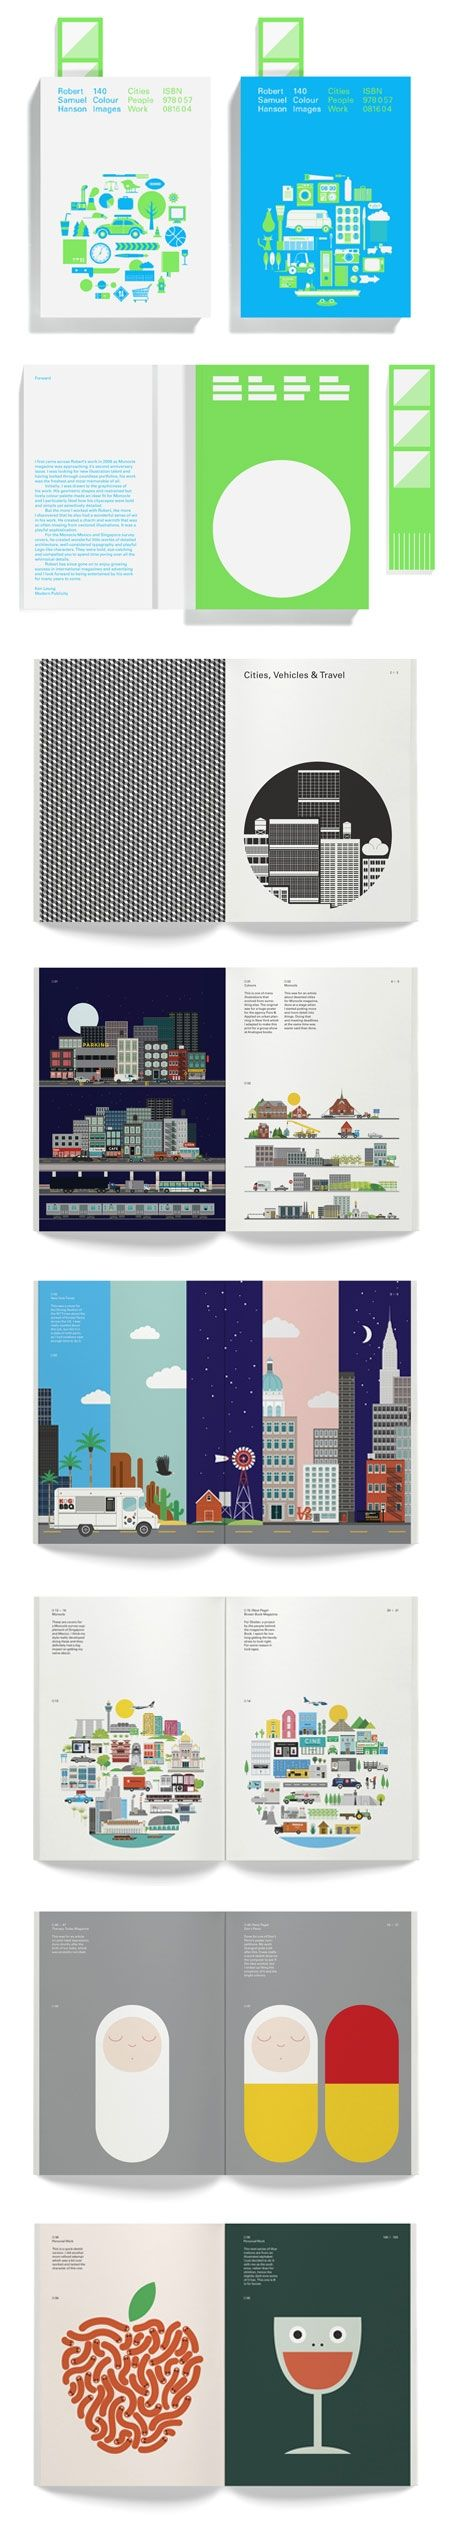 love the colors and modern aesthetic. The illustrations could be fun, too. M.S.[[[픽토그램, 조화, 하나, grobal]]]